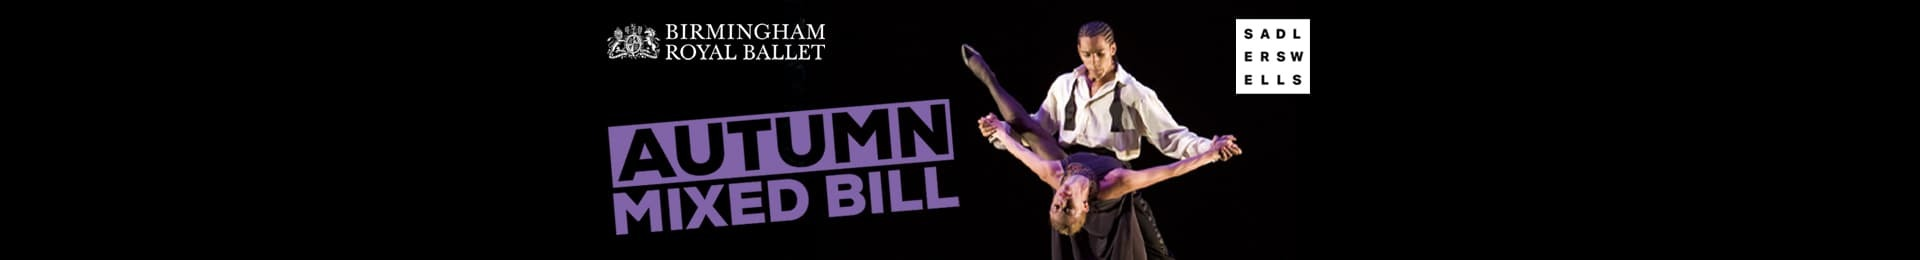 Birmingham Royal Ballet: Autumn 2019 Mixed Bill banner image